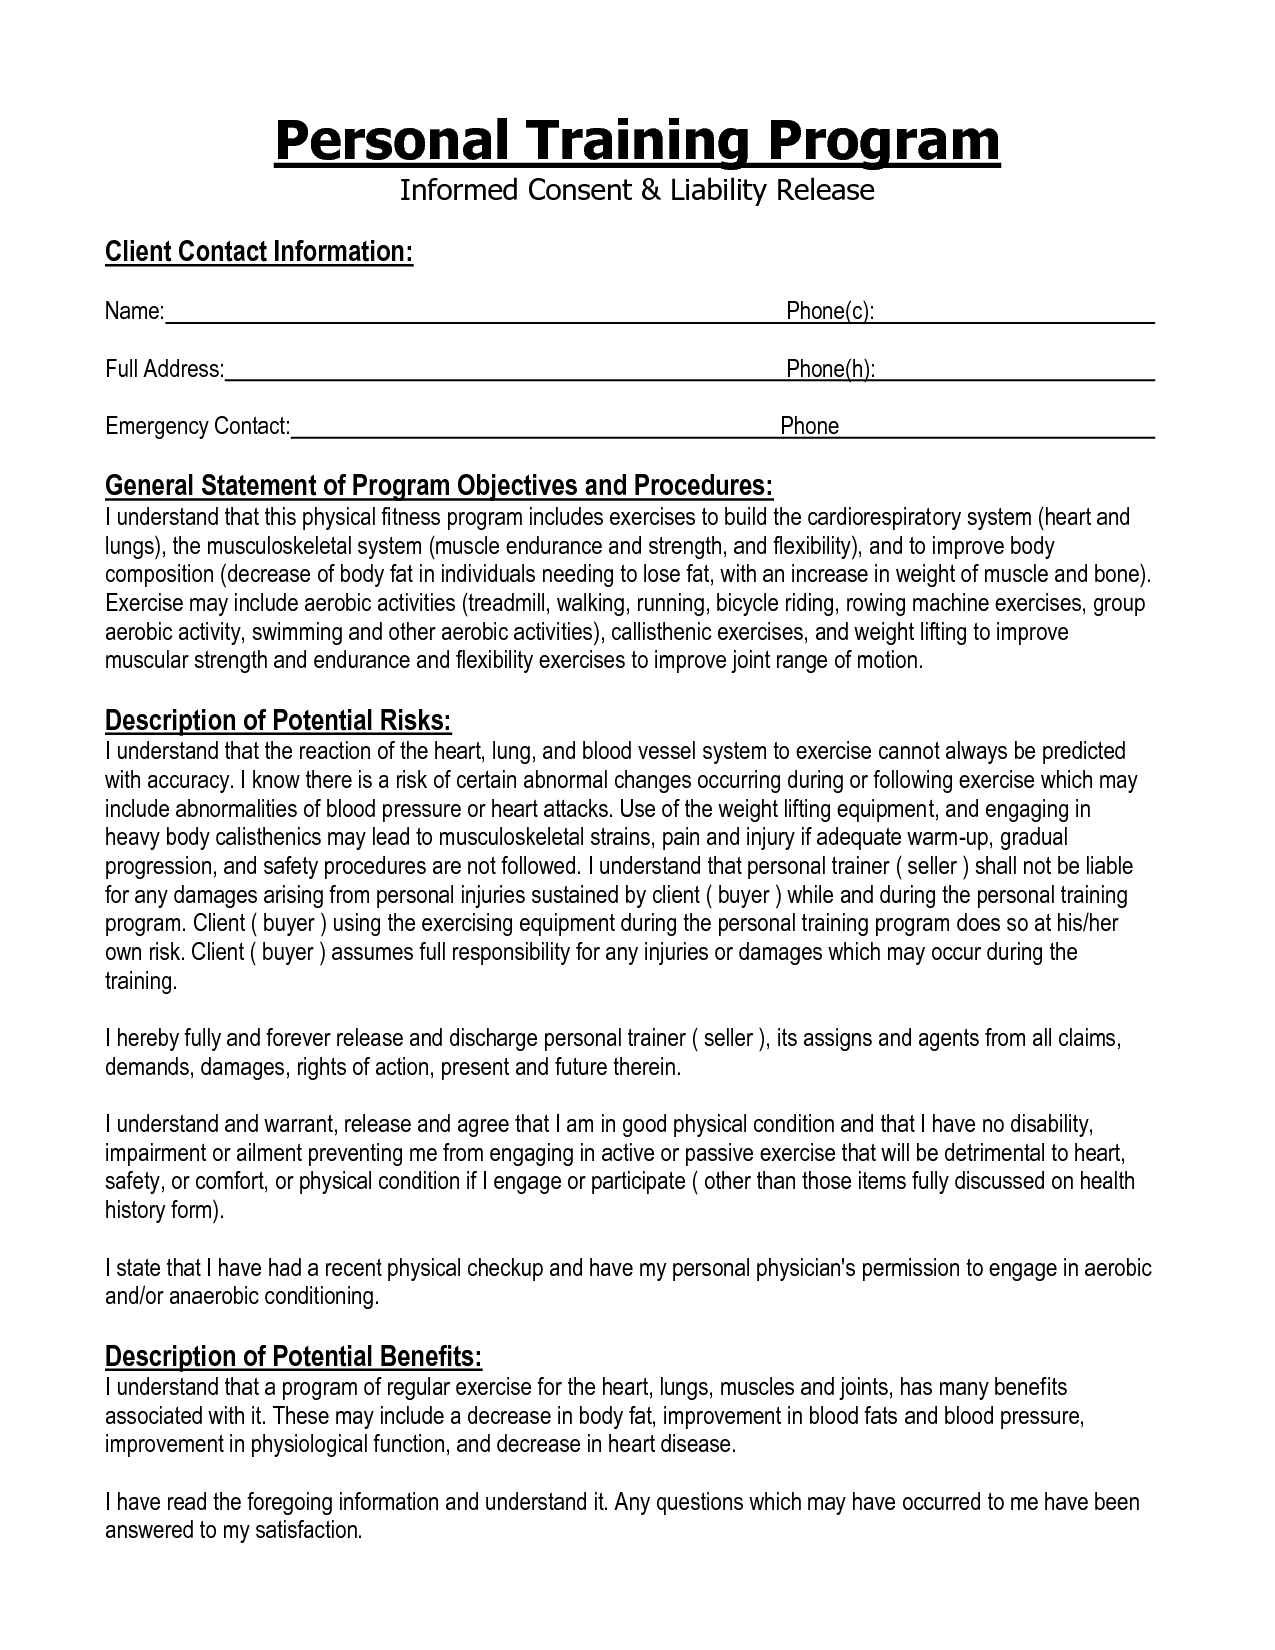 Informed Consent Form Personal Training Google Search